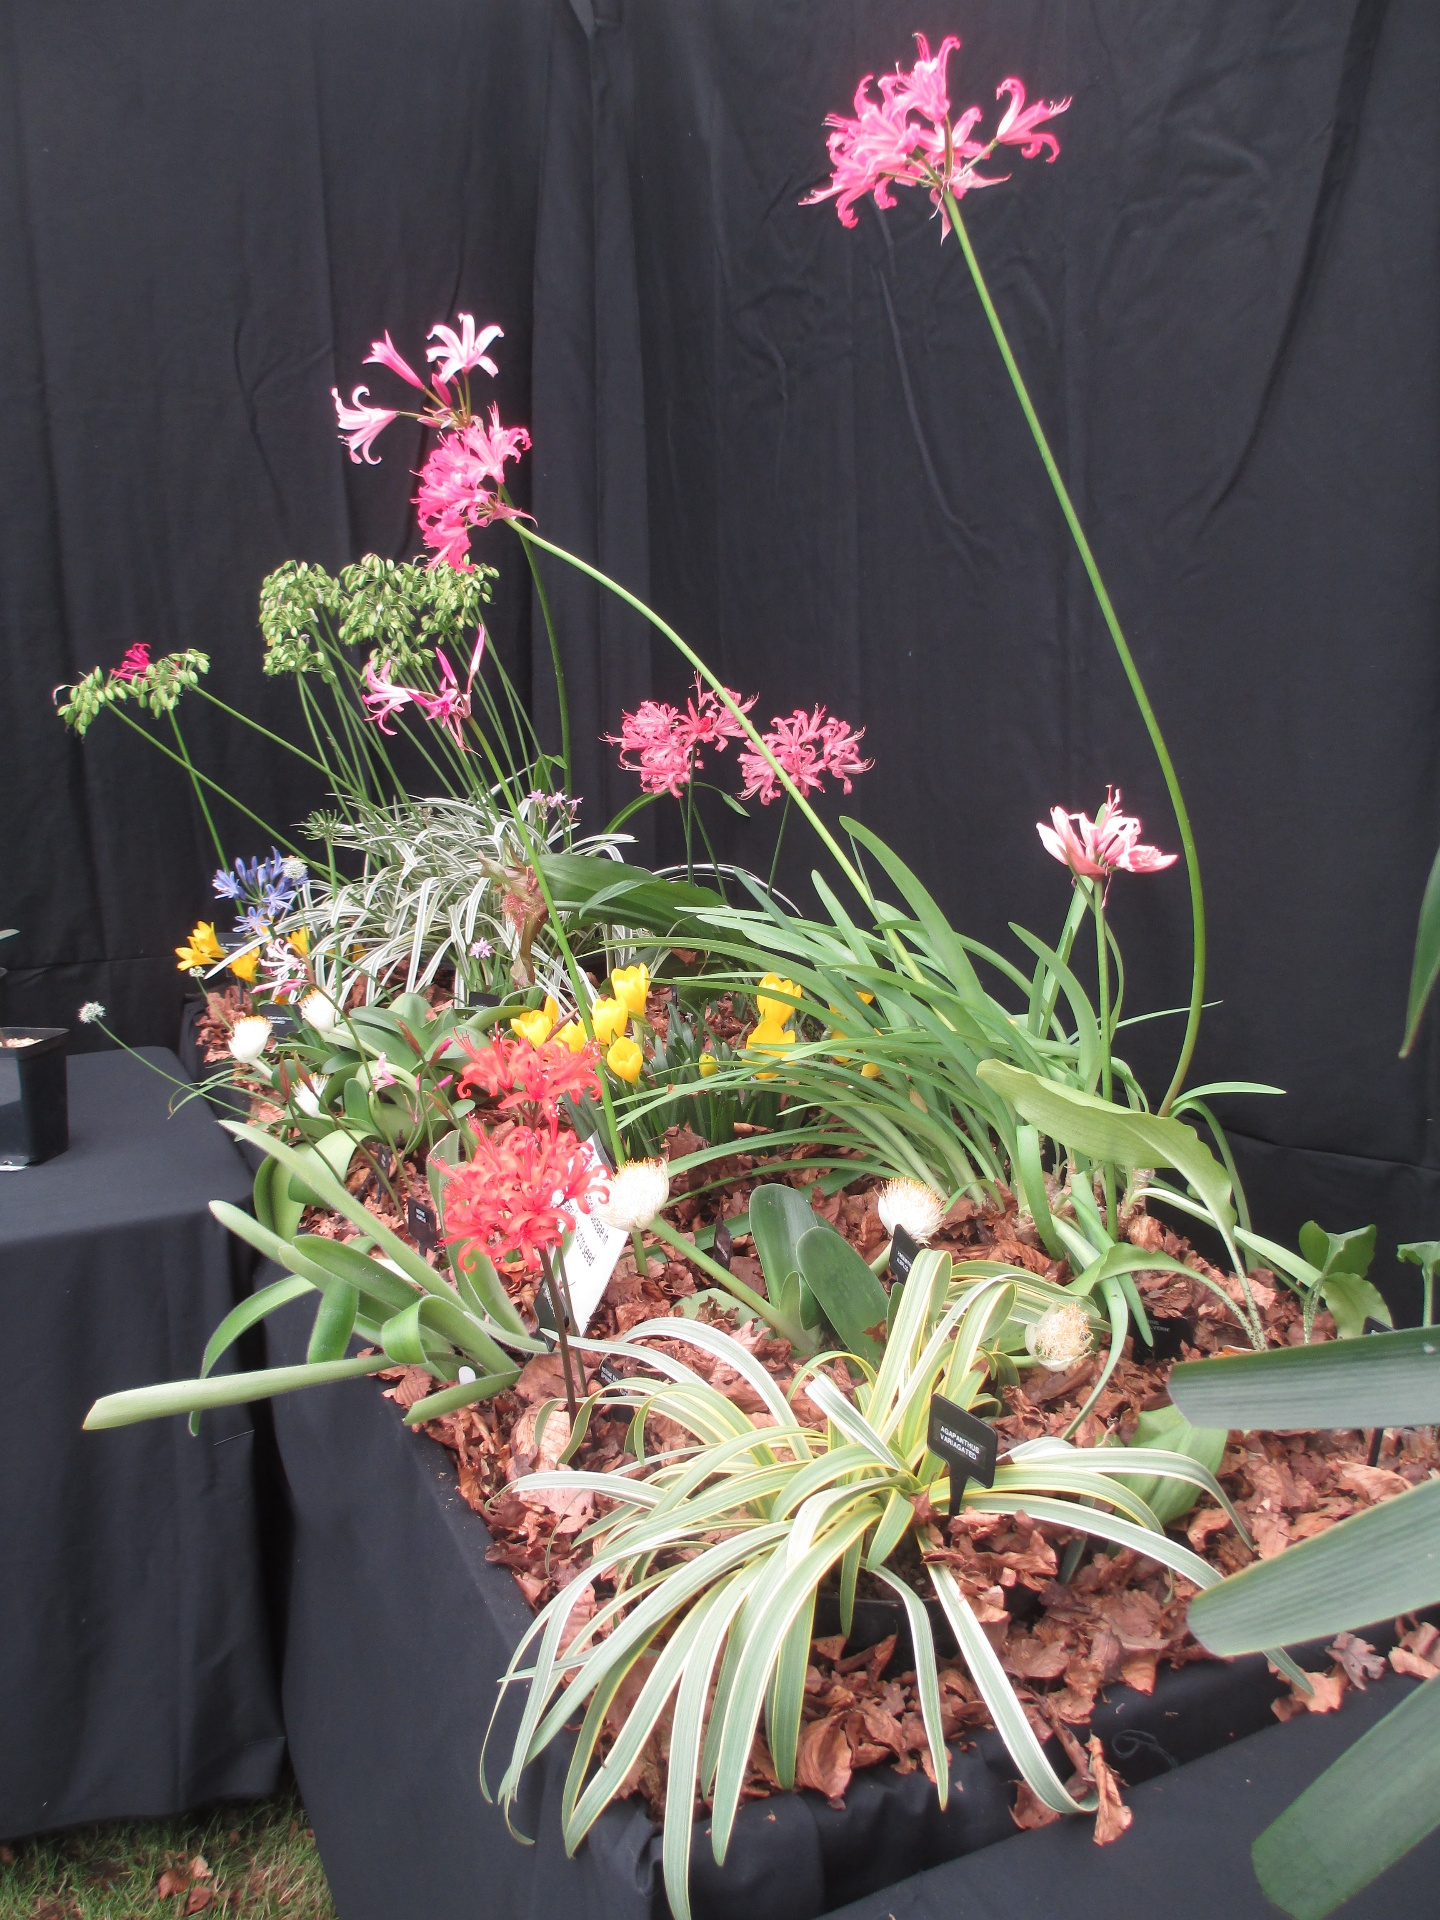 Display including other Amaryllids as well as Nerines.